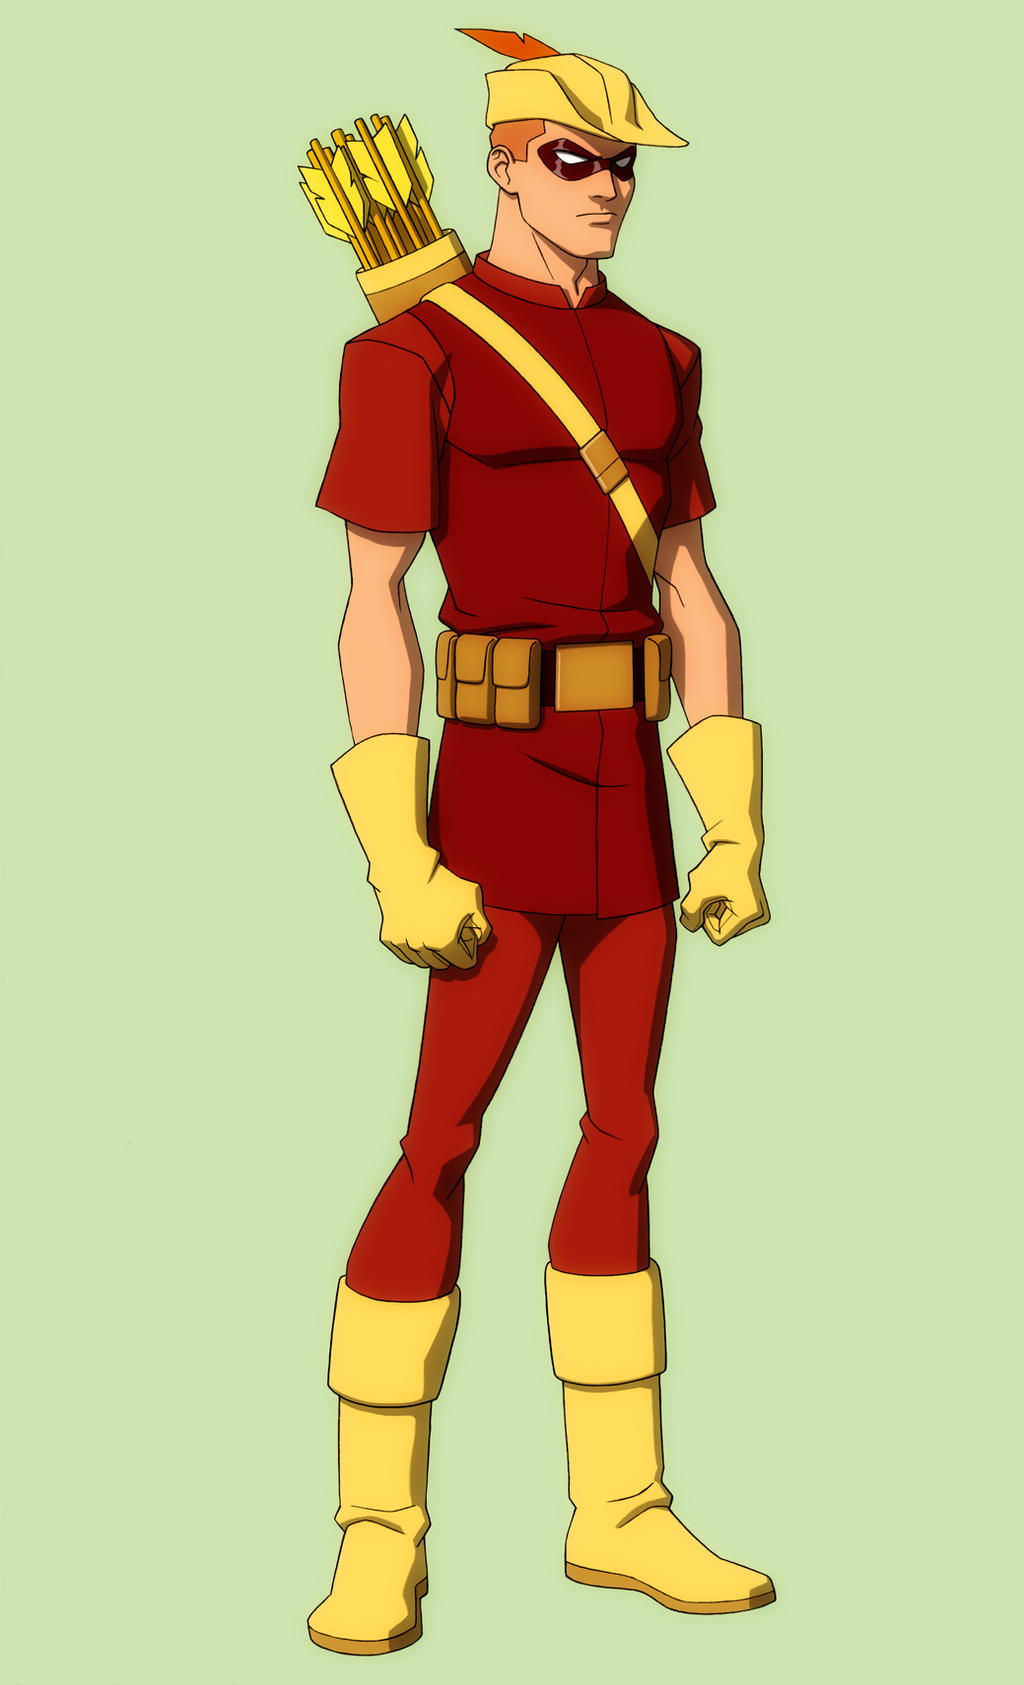 YOUNG JUSTICE  SPEEDY  quot crf quot  by Jerome-K-MooreYoung Justice Speedy